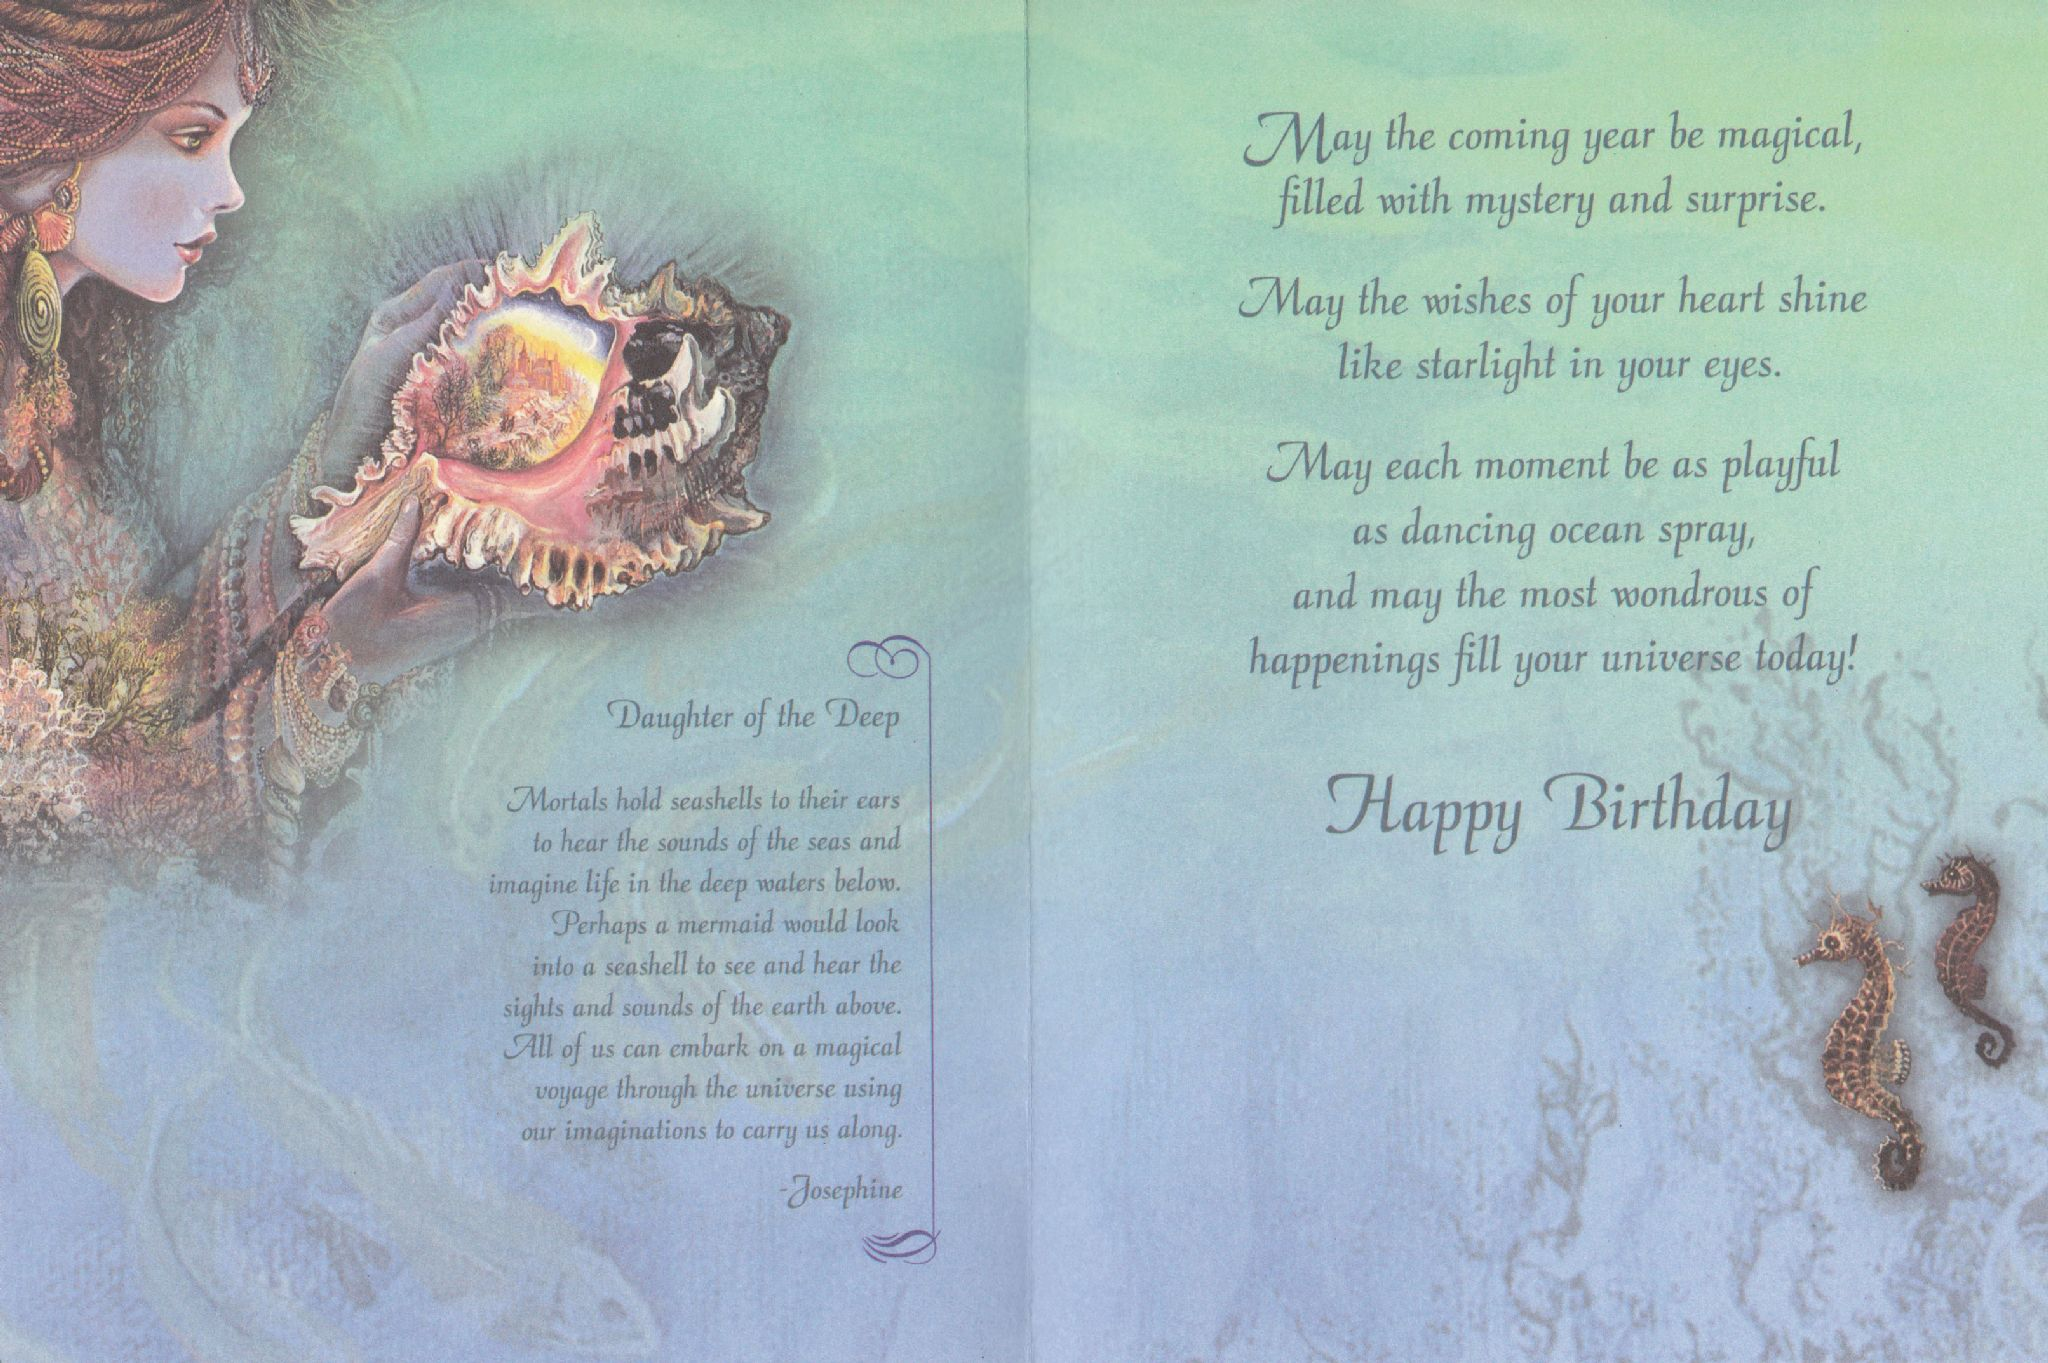 Birthday Card Daughter Of The Deep Birthday Greetings Card By